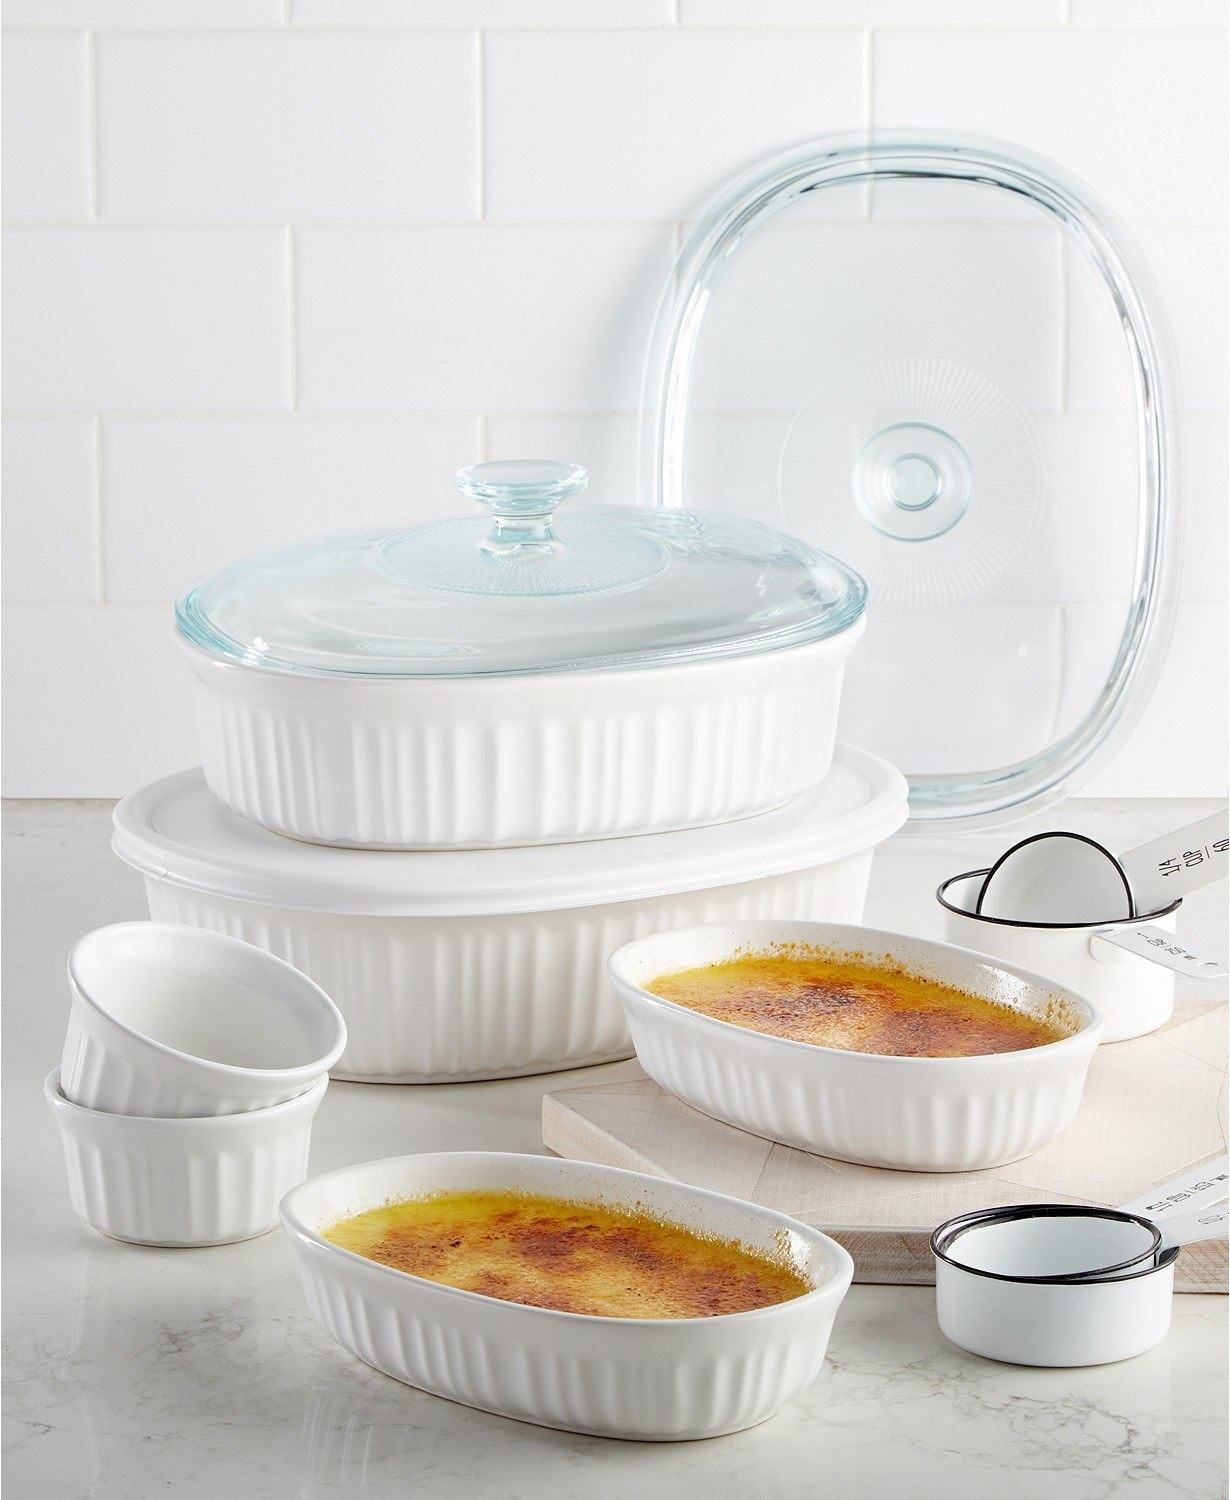 the complete corningware french white 10-piece bakeware set on display